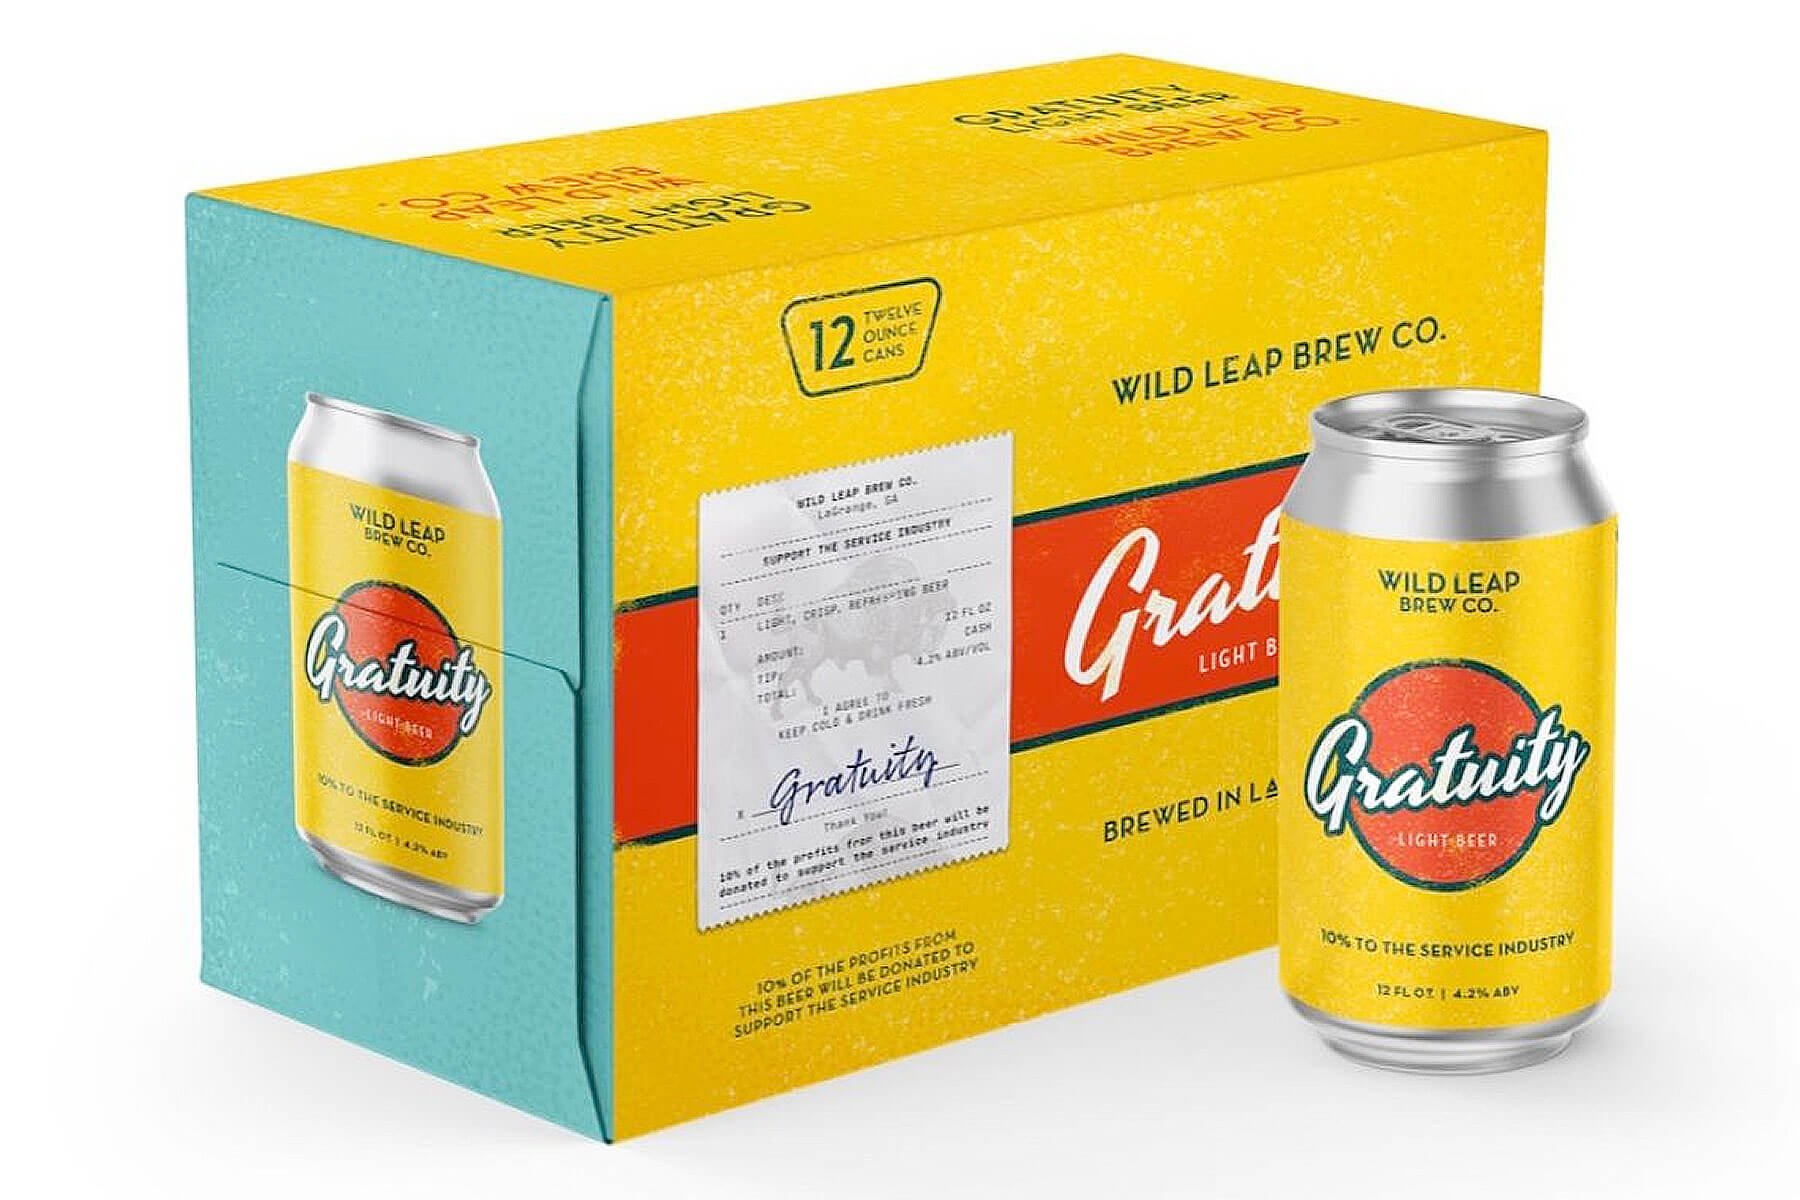 Packaging design for 12 packs of 12 oz. cans of the Gratuity Light Beer by Wild Leap Brew Co.